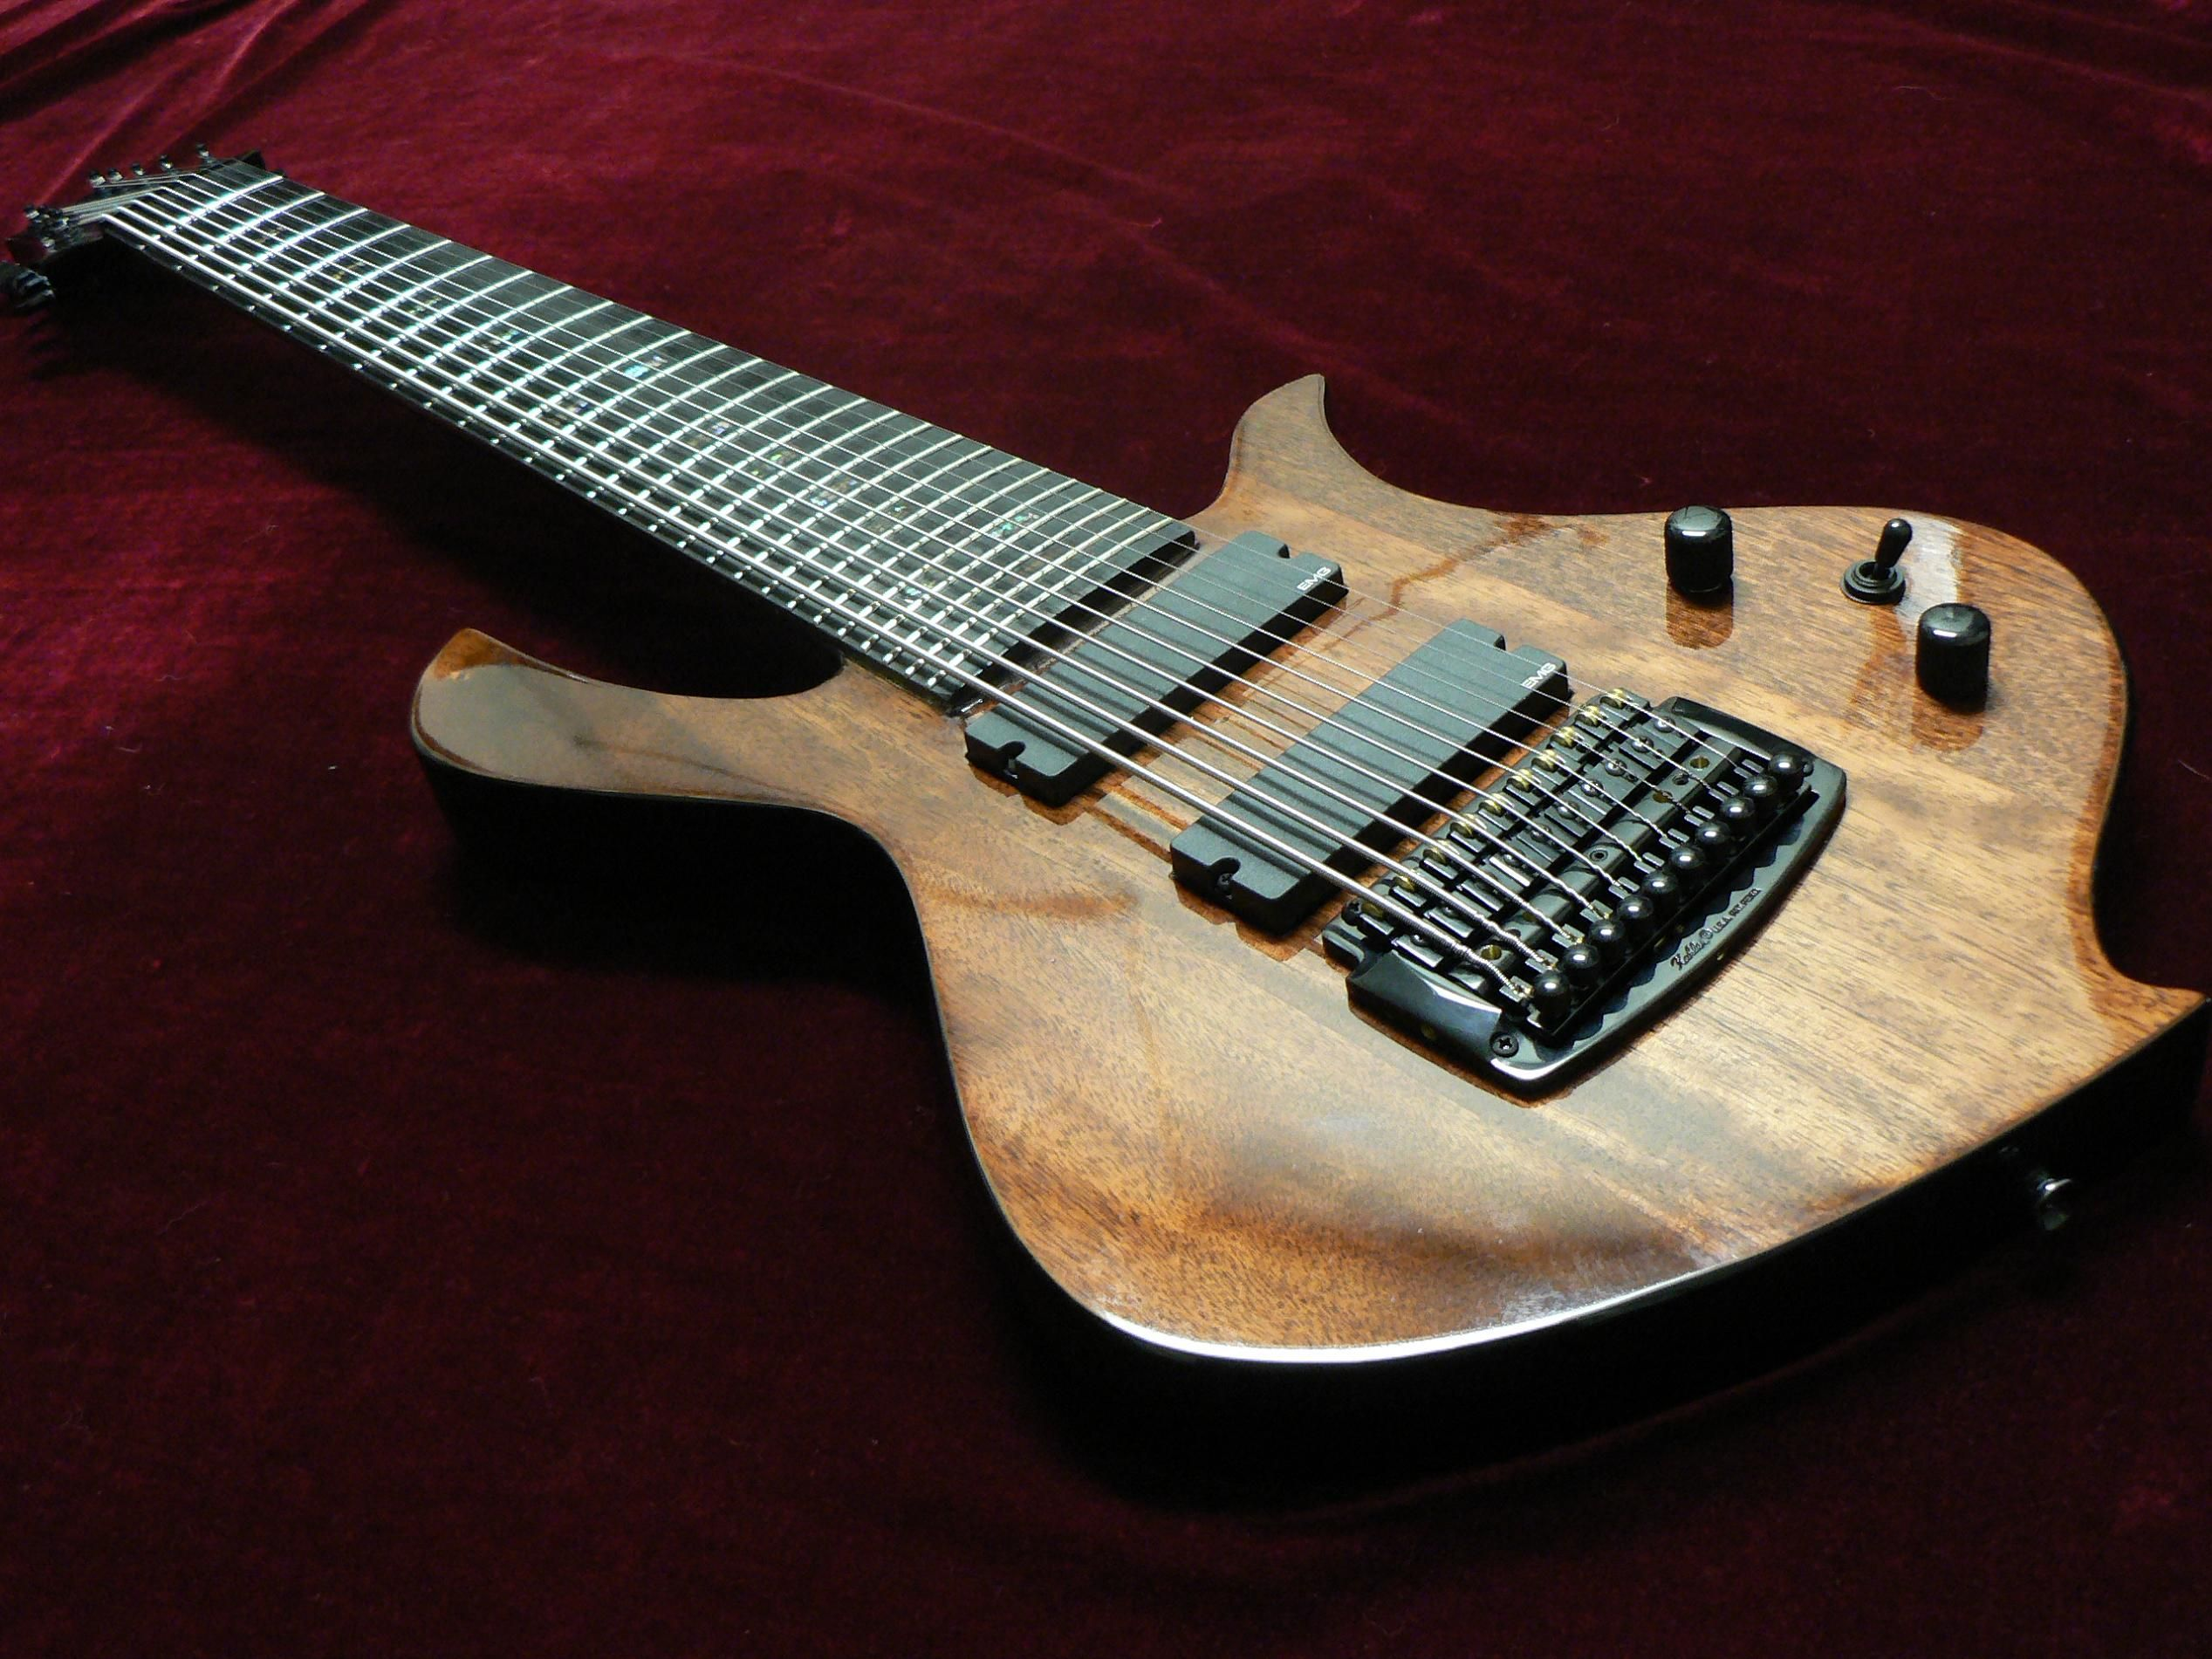 halo xsi 10 string electric guitar halo custom guitars pinterest halo 10 and electric. Black Bedroom Furniture Sets. Home Design Ideas